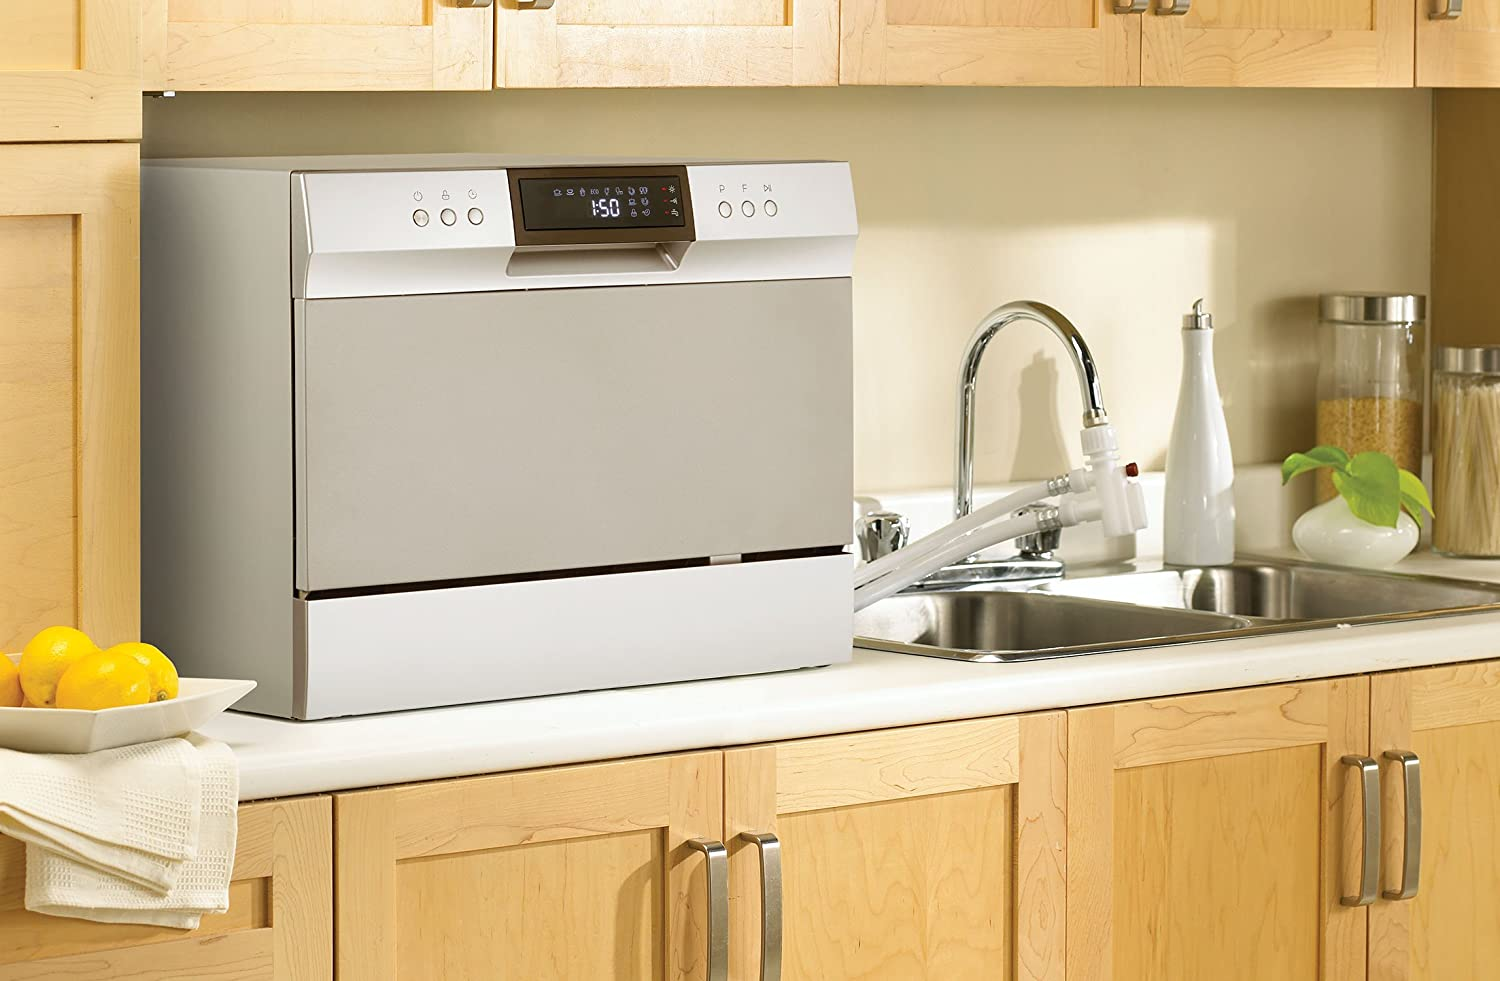 Danby Countertop Dishwasher Review Danby Ddw631sdb Review